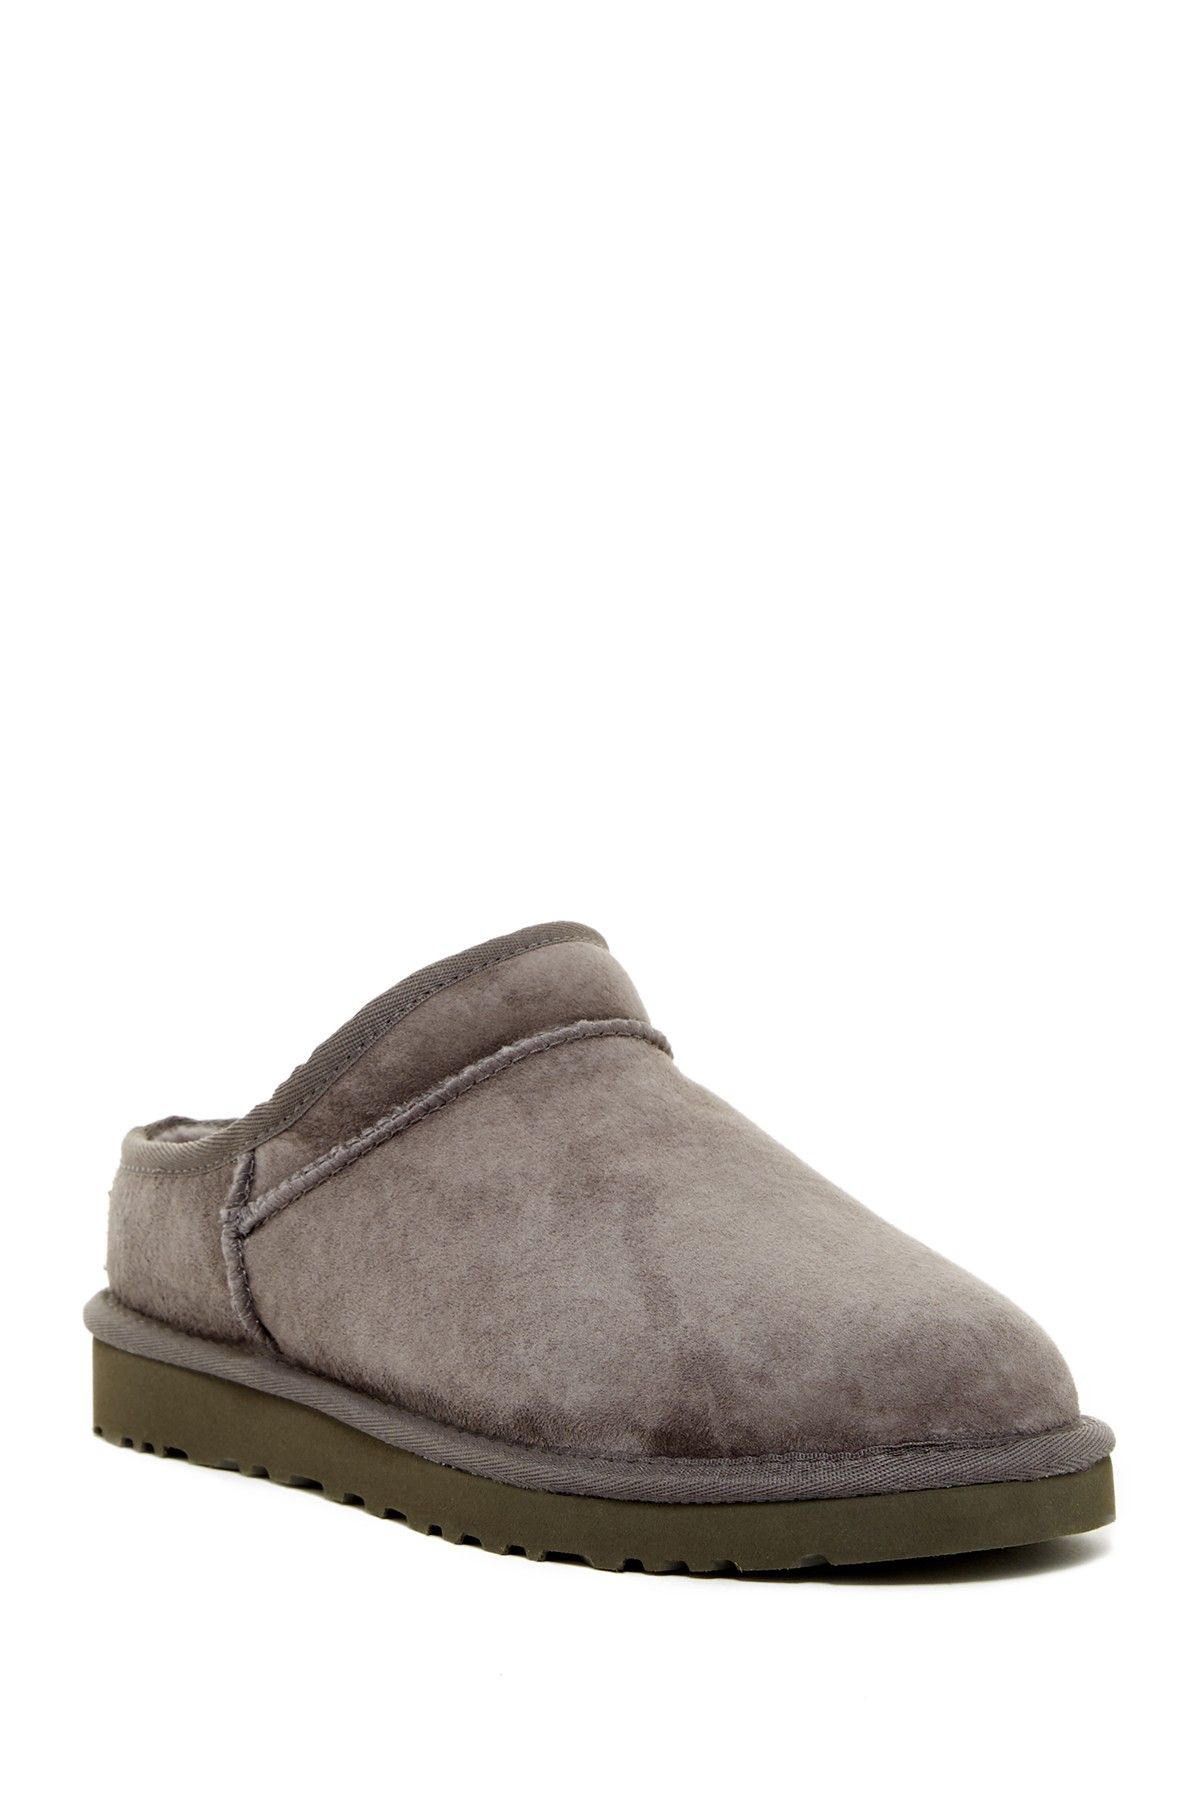 656e65faa85 UGG Classic Water Resistant Slipper in 2019 | Products | Womens ...